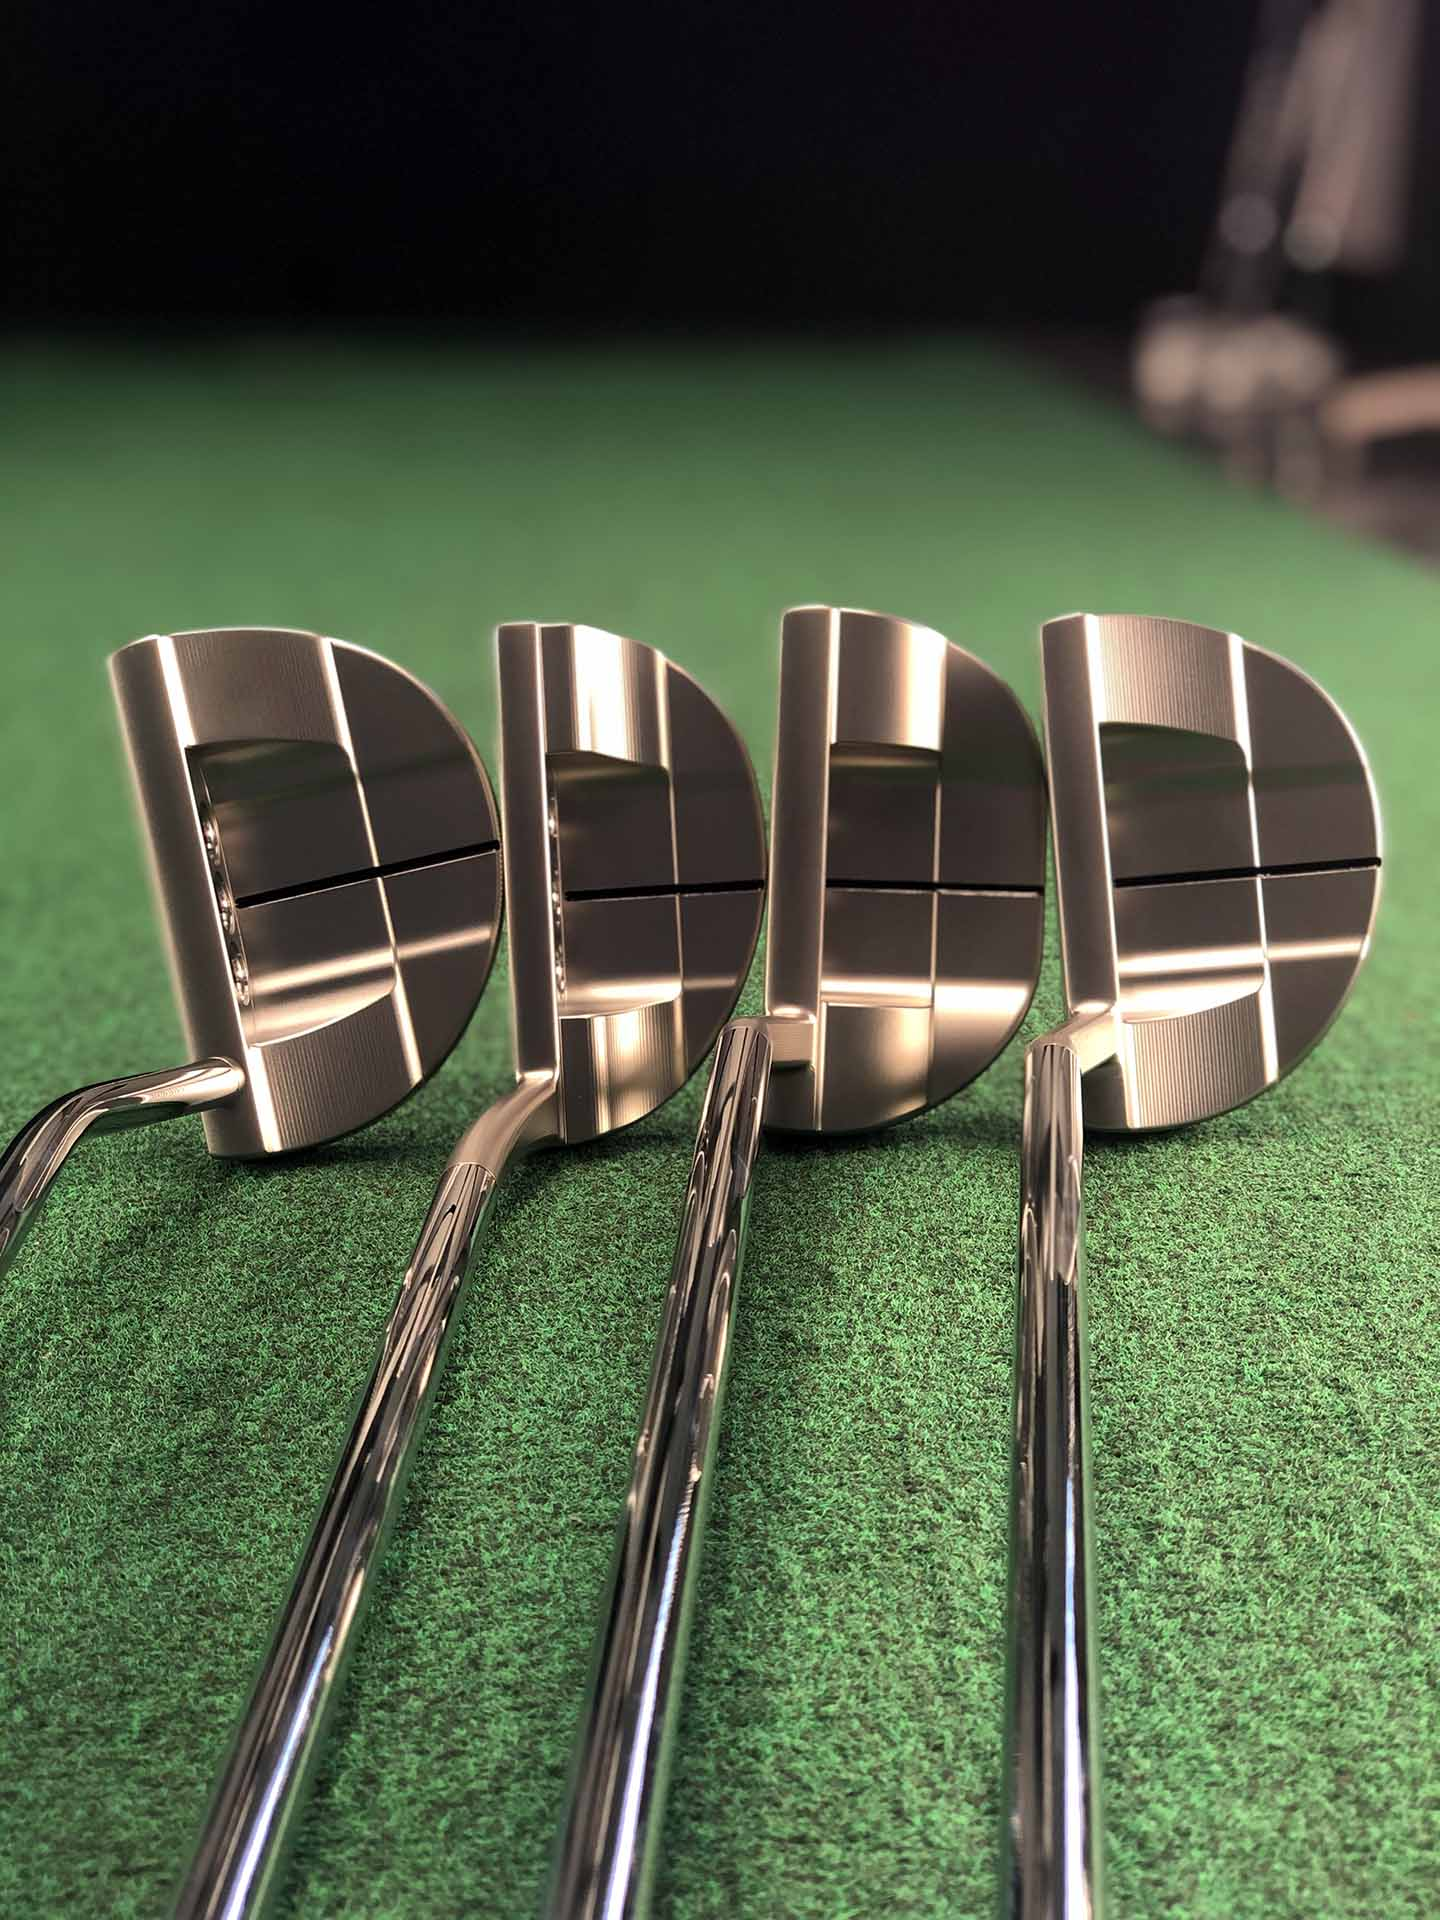 2020 Scotty Cameron Putters